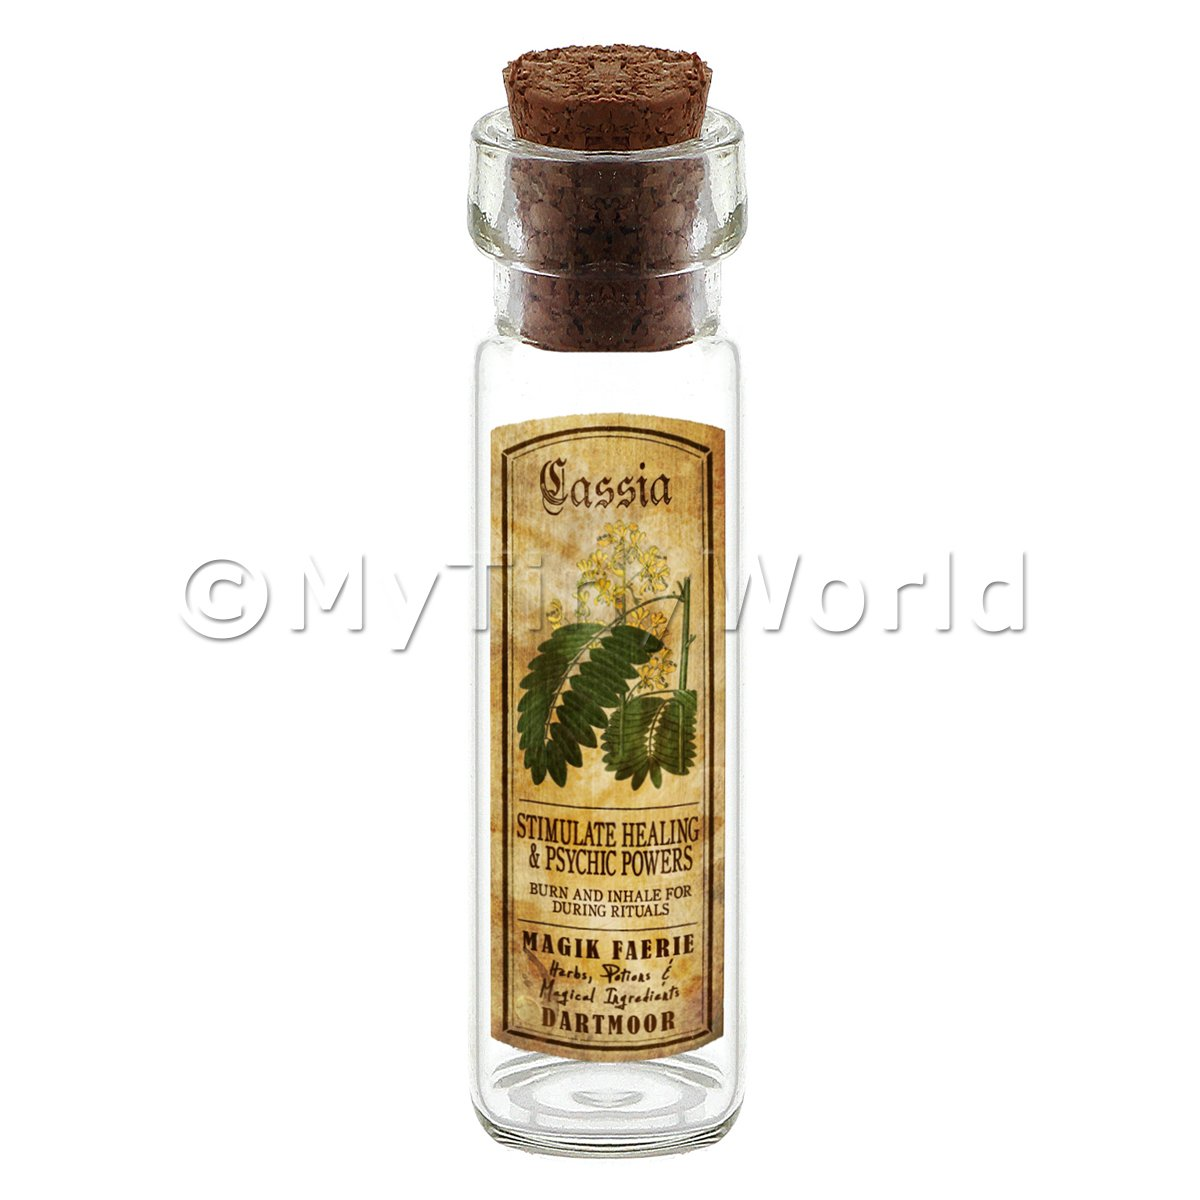 Dolls House Apothecary cassia Herb Long Colour Label And Bottle